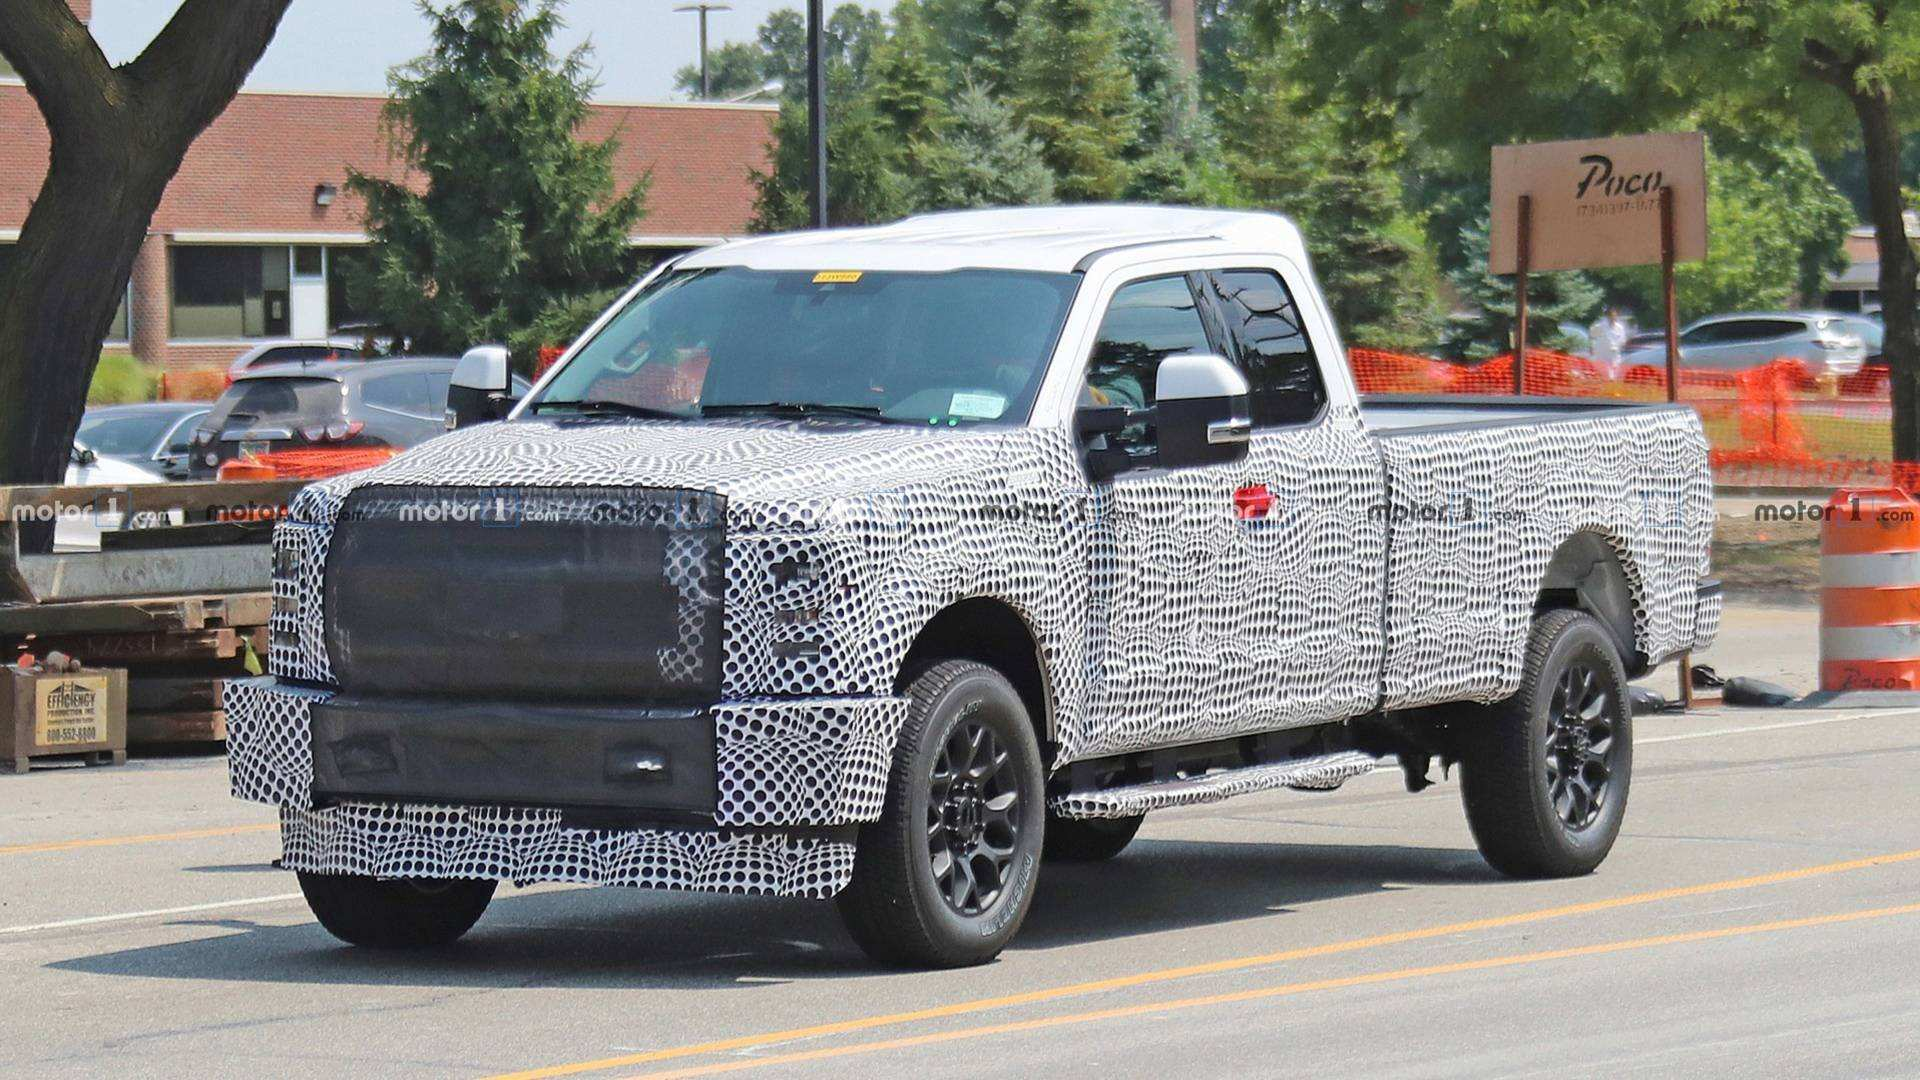 37 New Ford Trucks 2020 Research New